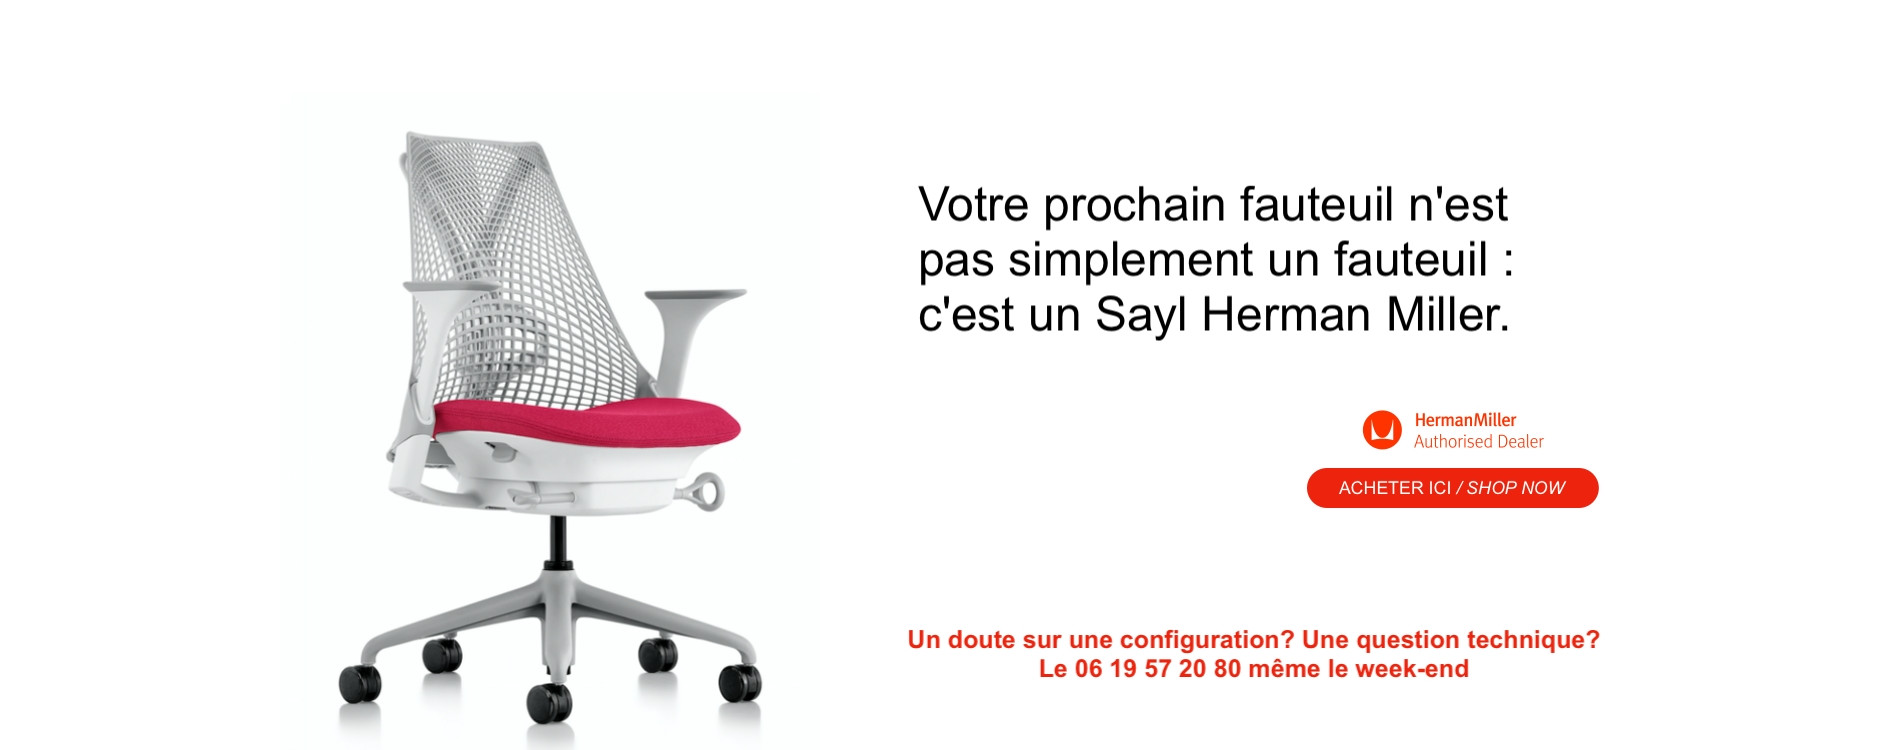 Your next chair is a Sayl Herman Miller